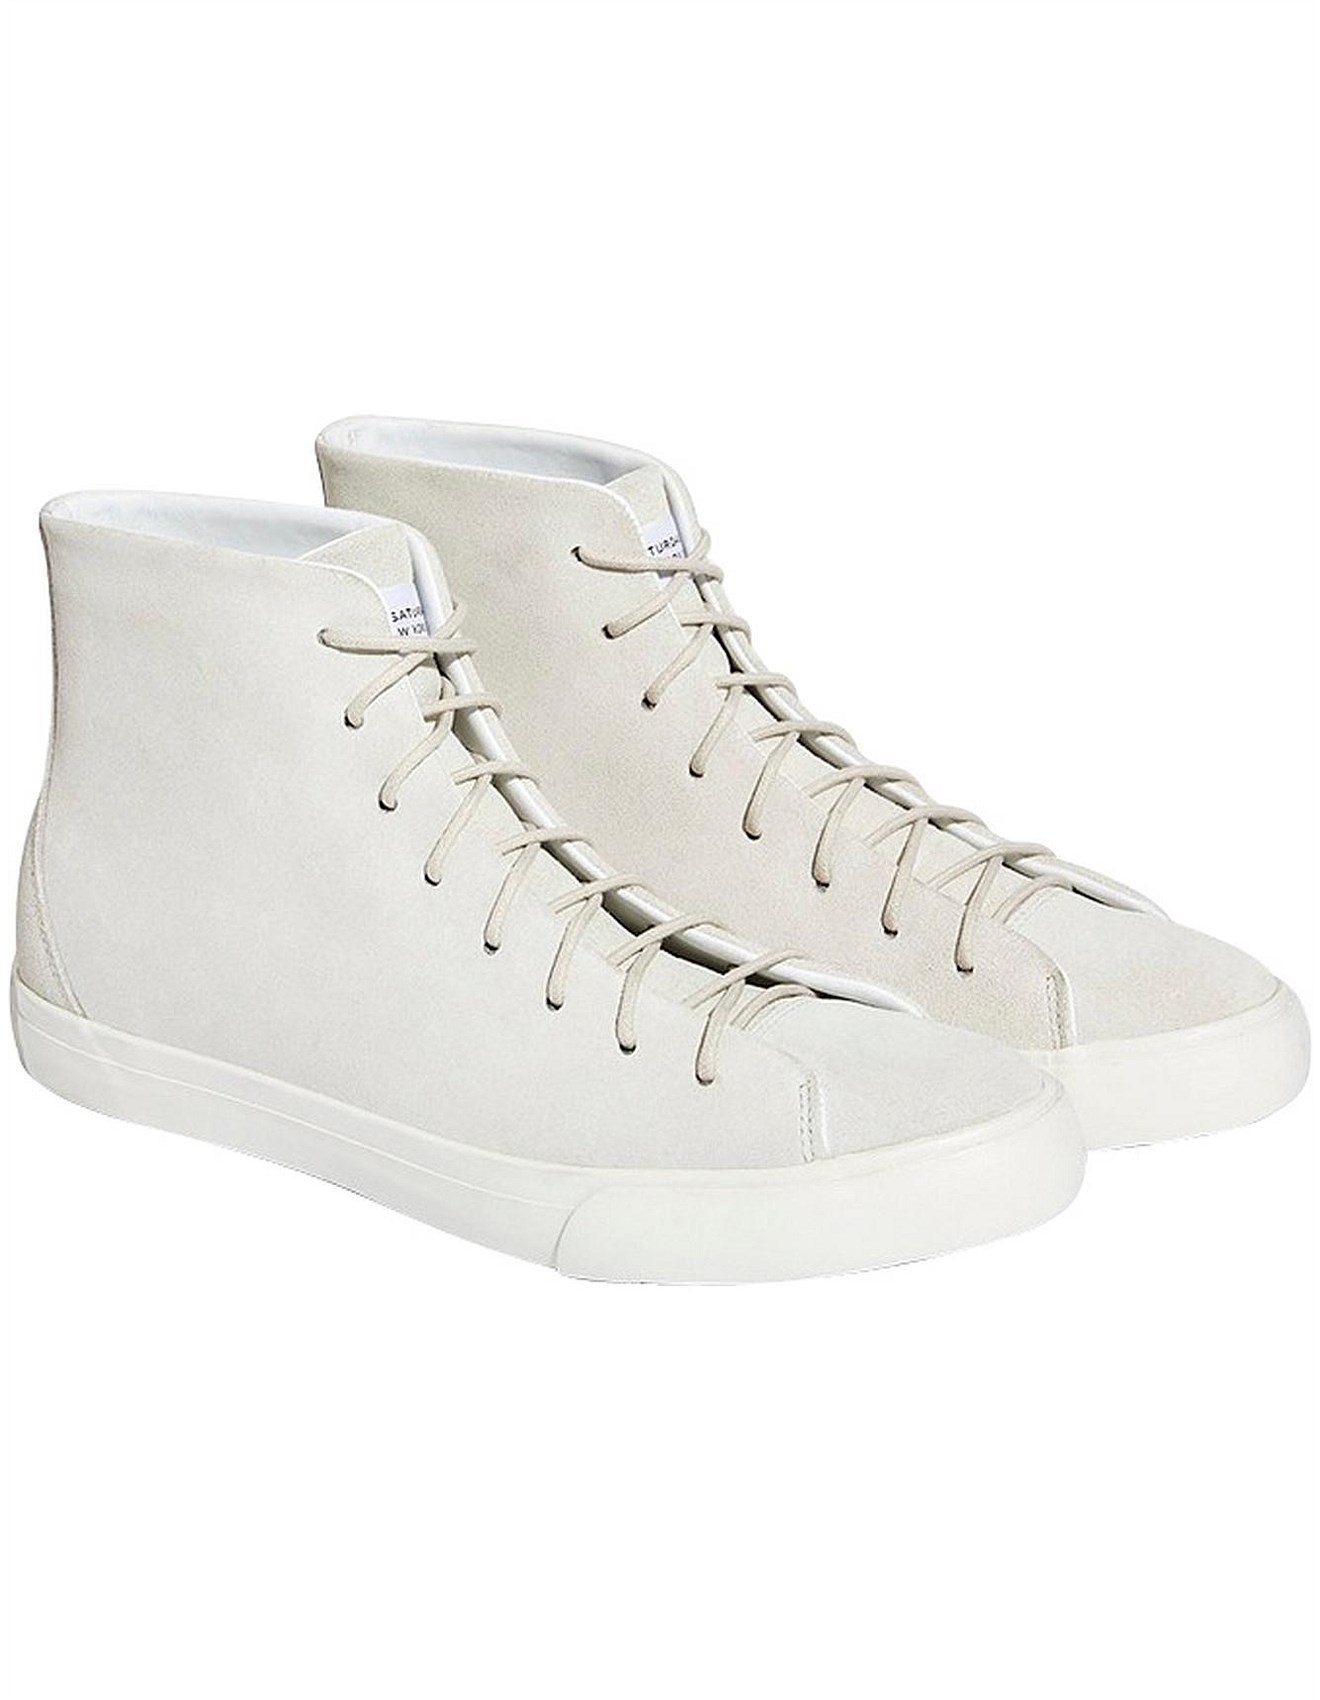 93049b1eb9c Mike High Suede Sneaker